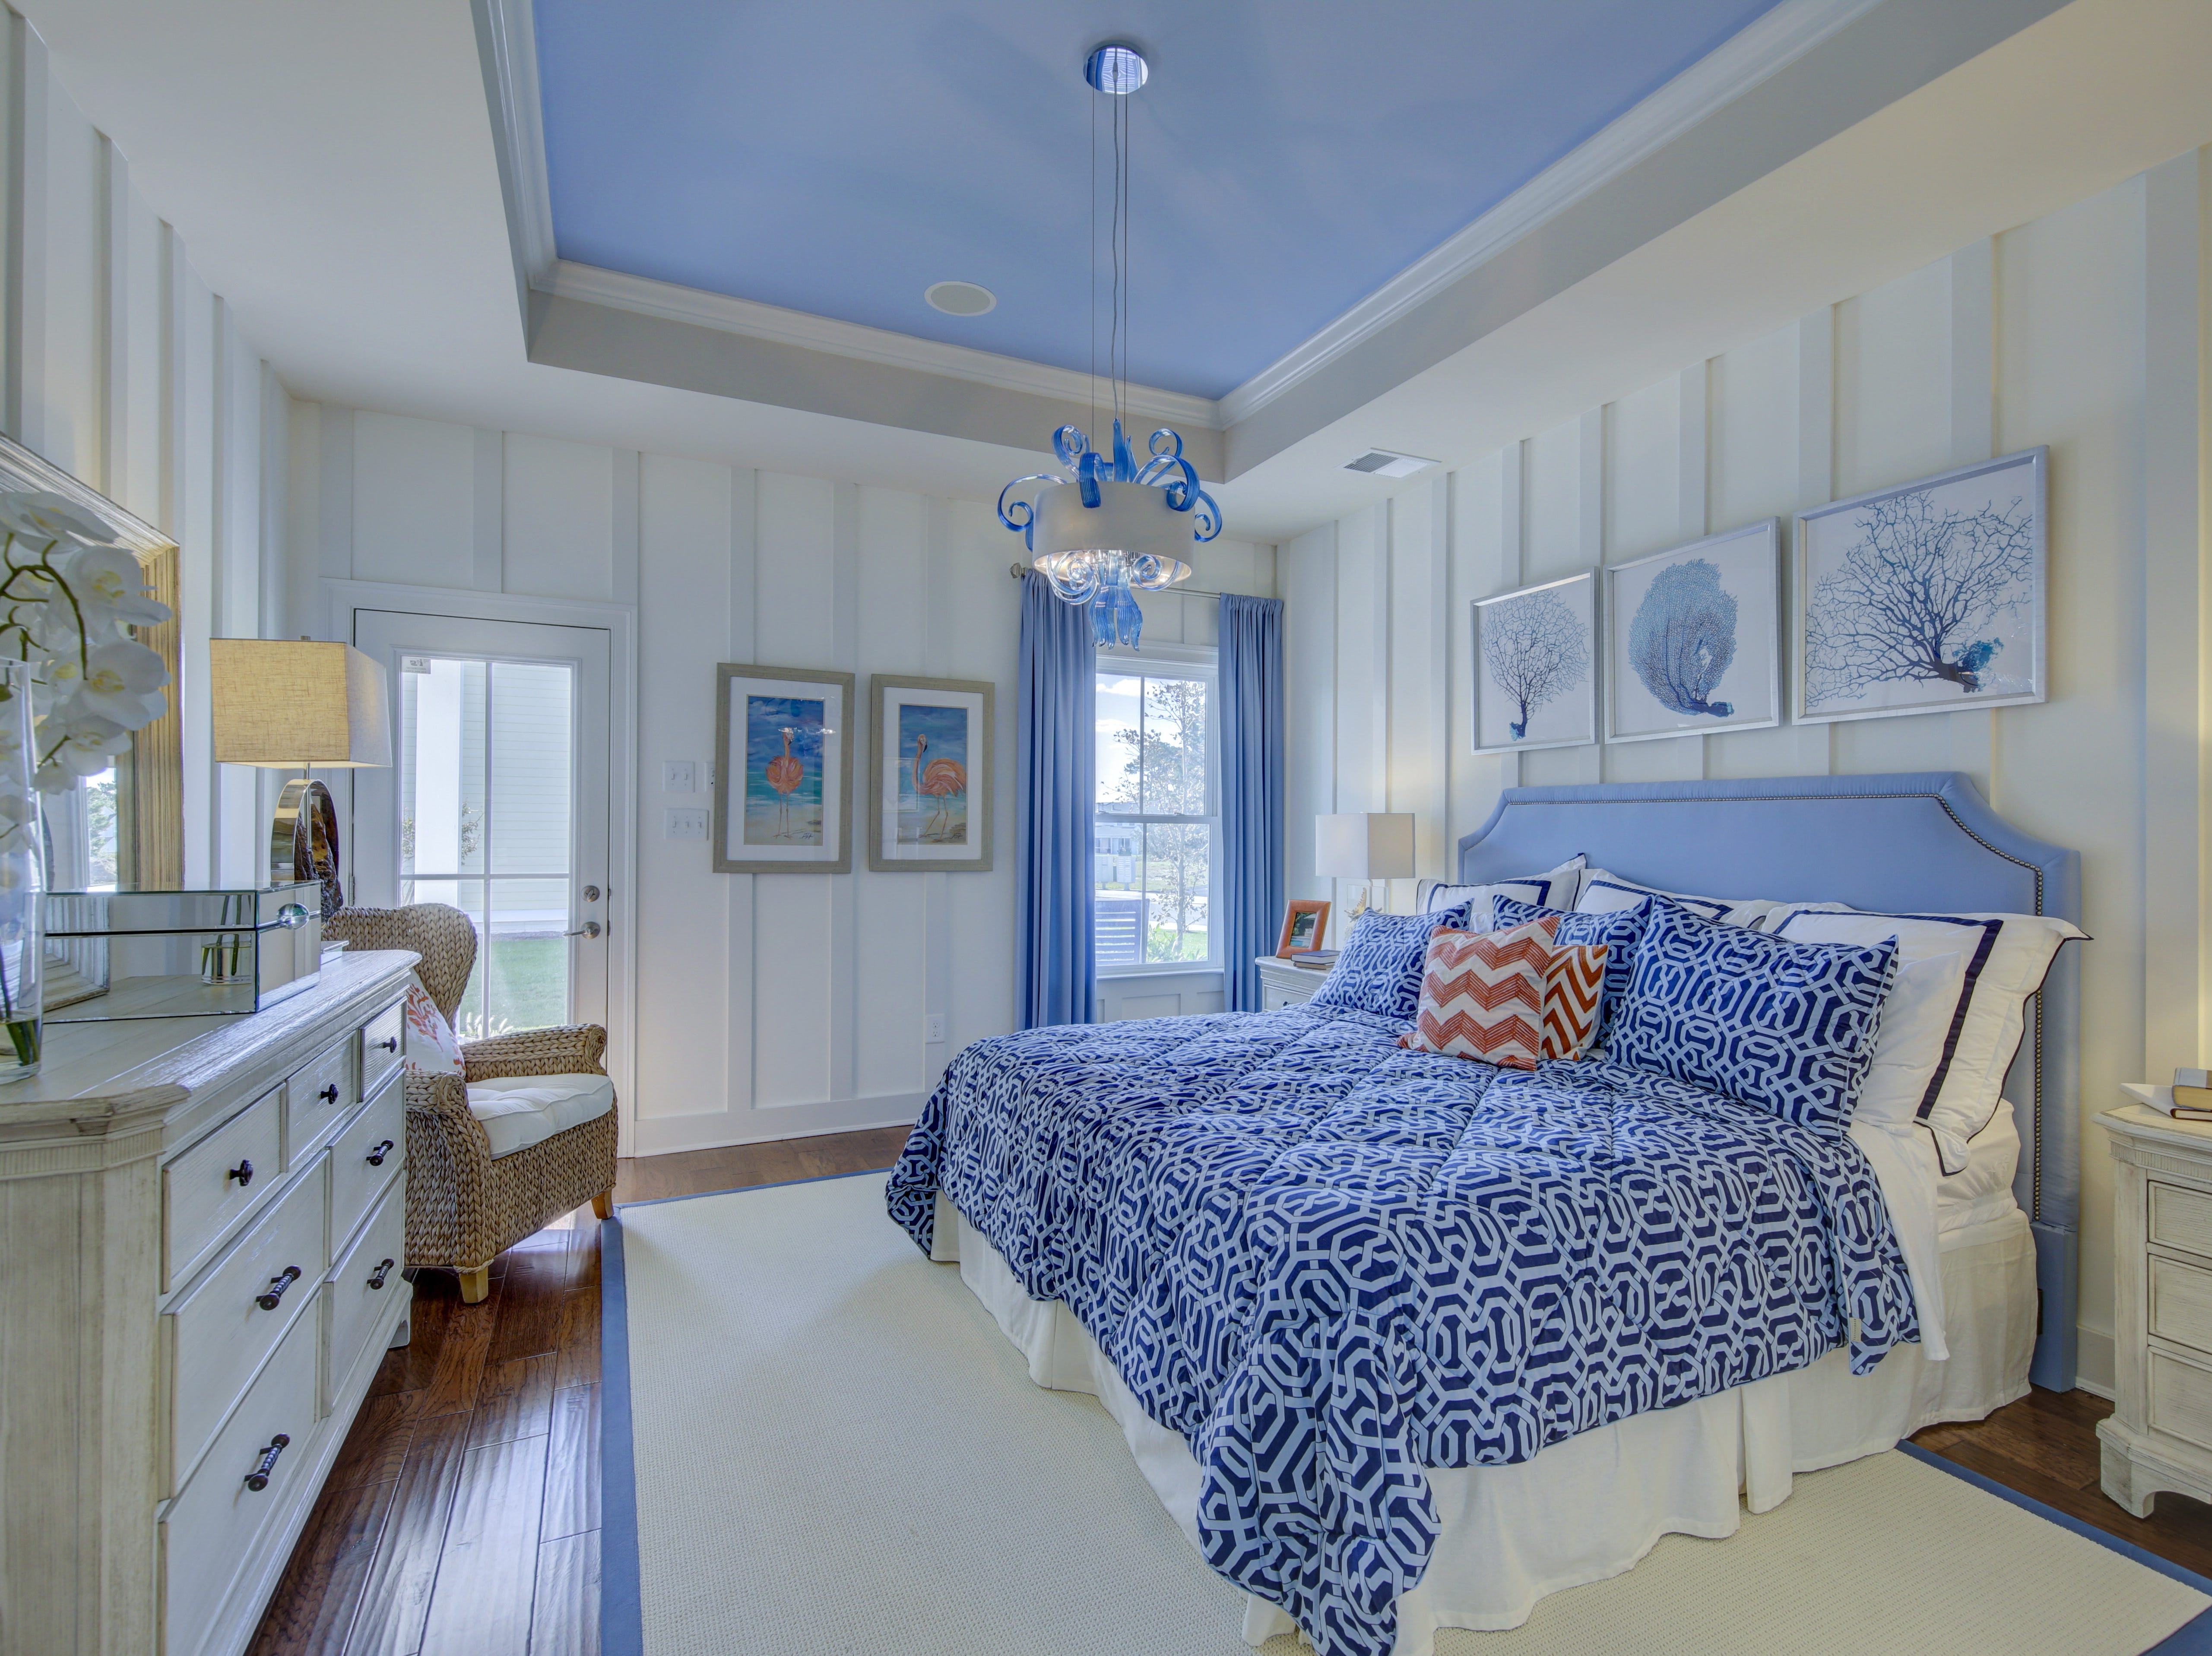 The master bedroom in the model home at The Overlook in Selbyville features a tray ceiling and moulding on the walls.